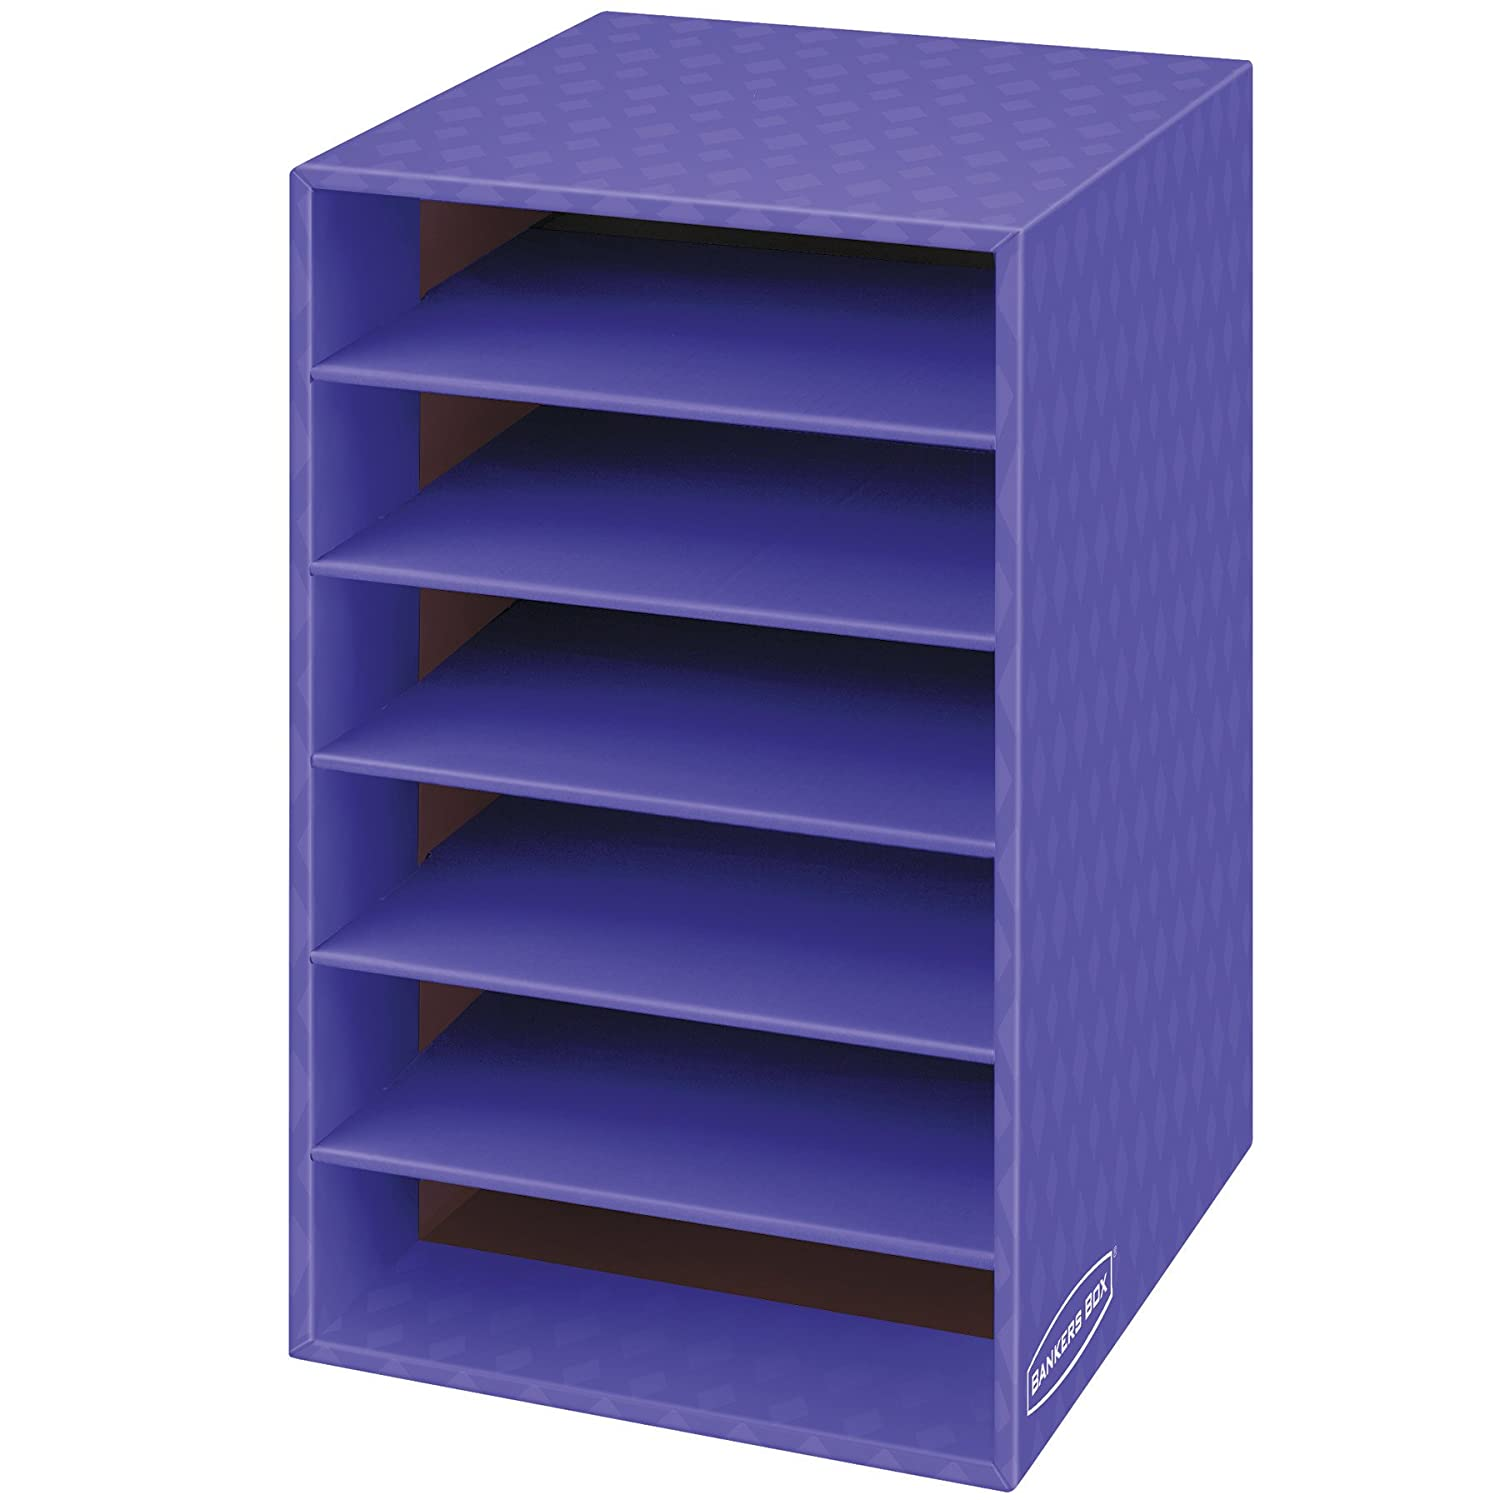 Bankers Box Classroom 6 Shelf Organizer, 18